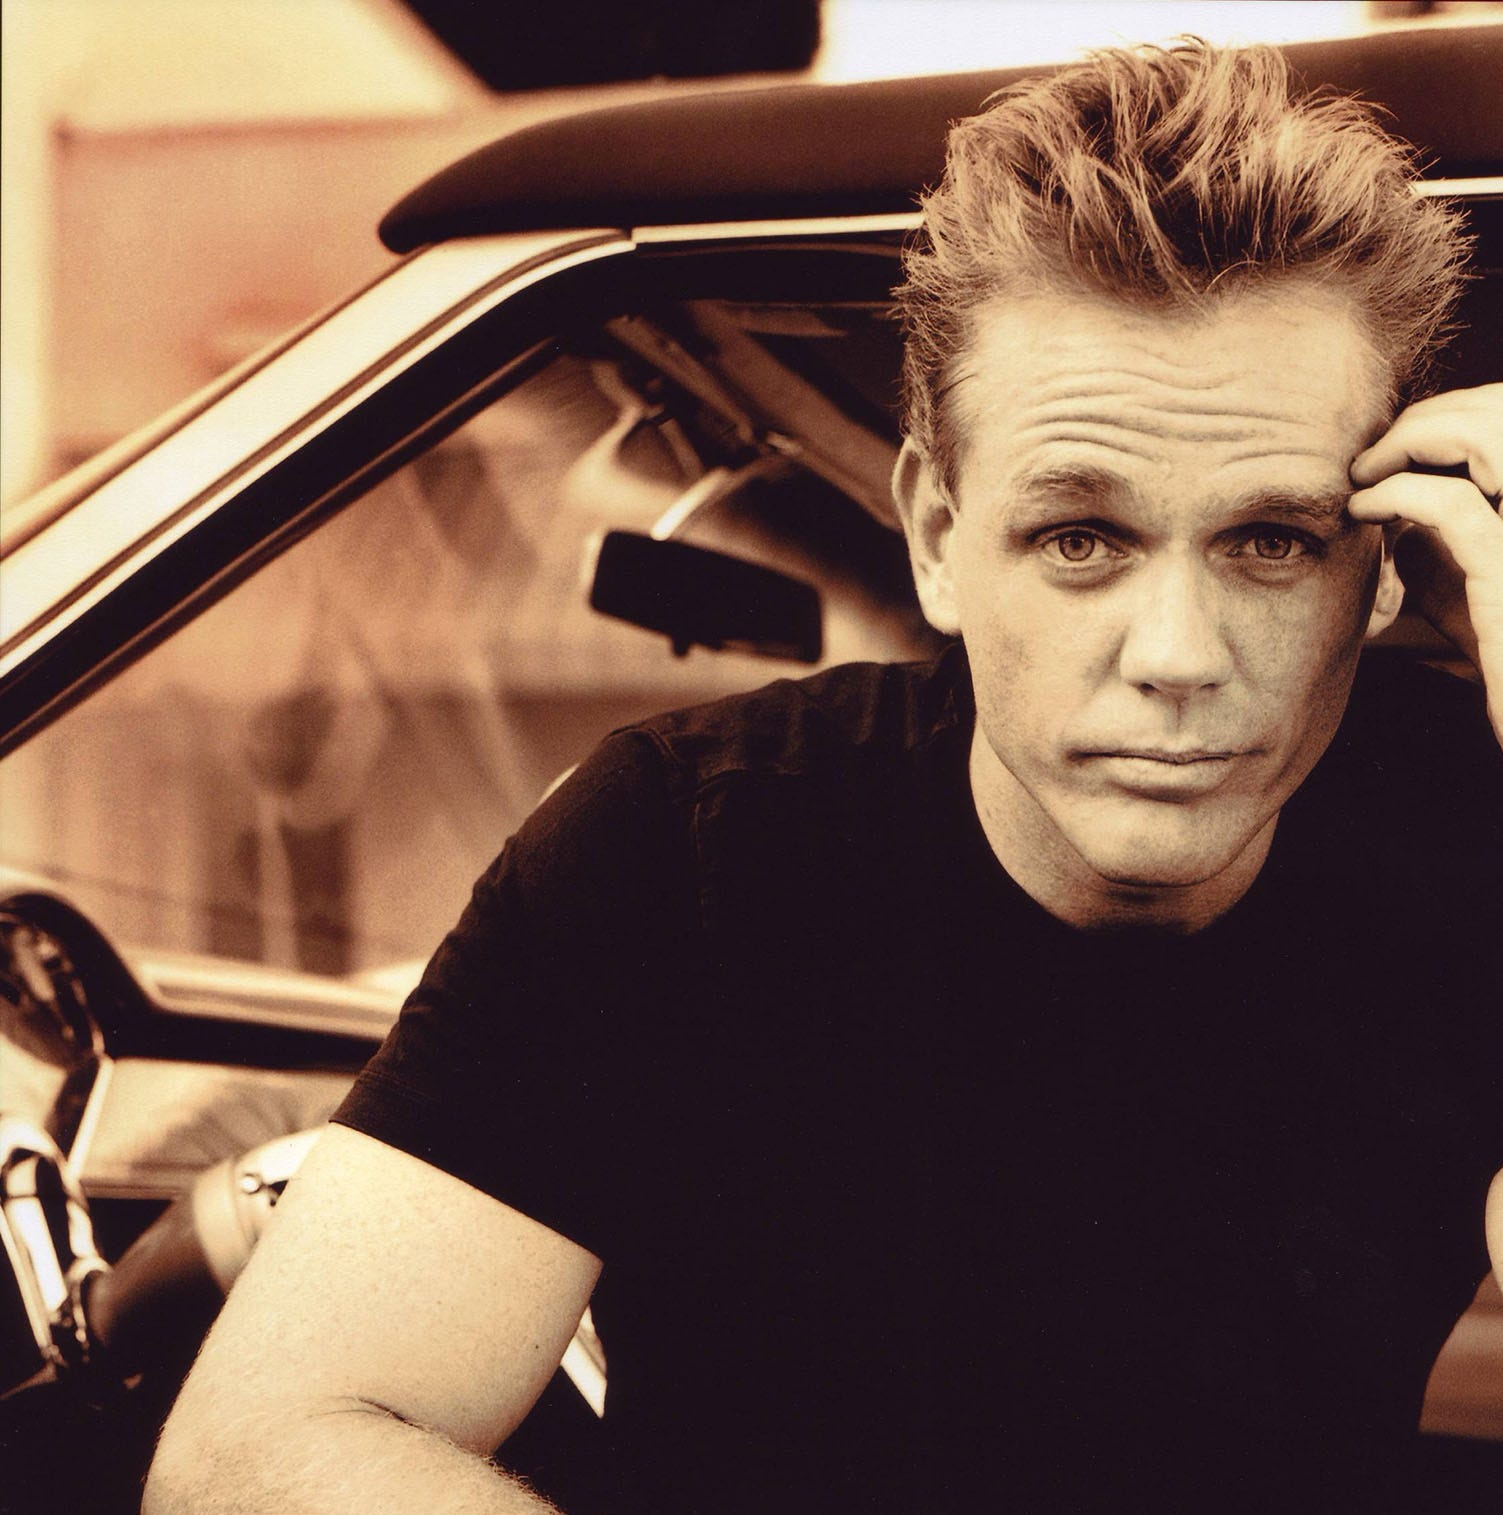 Stand-up comedian Christopher Titus brings his skewered comedy to the Orpheum